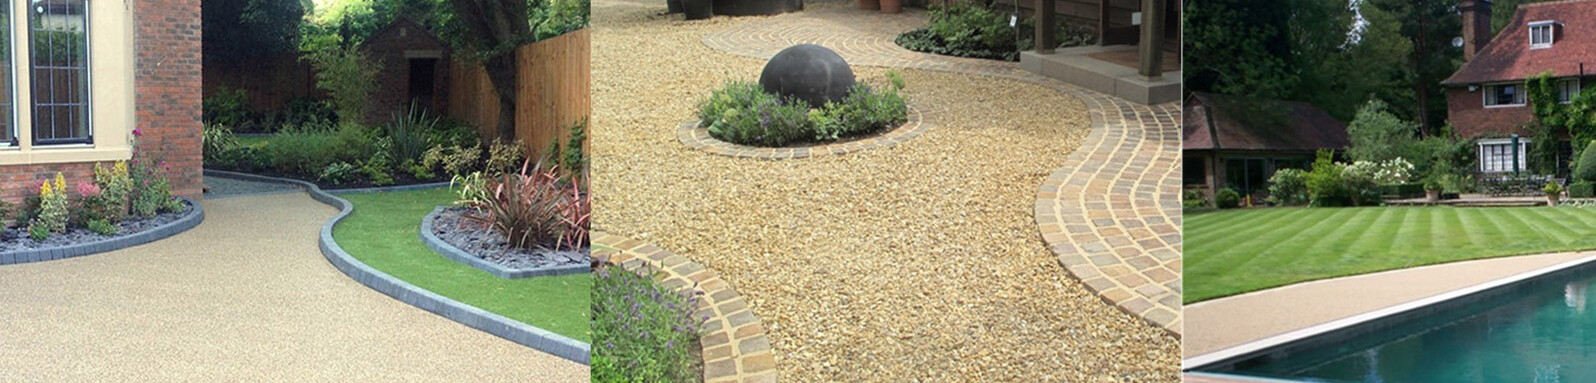 Resin Bound Driveways, Patios, Paths and More